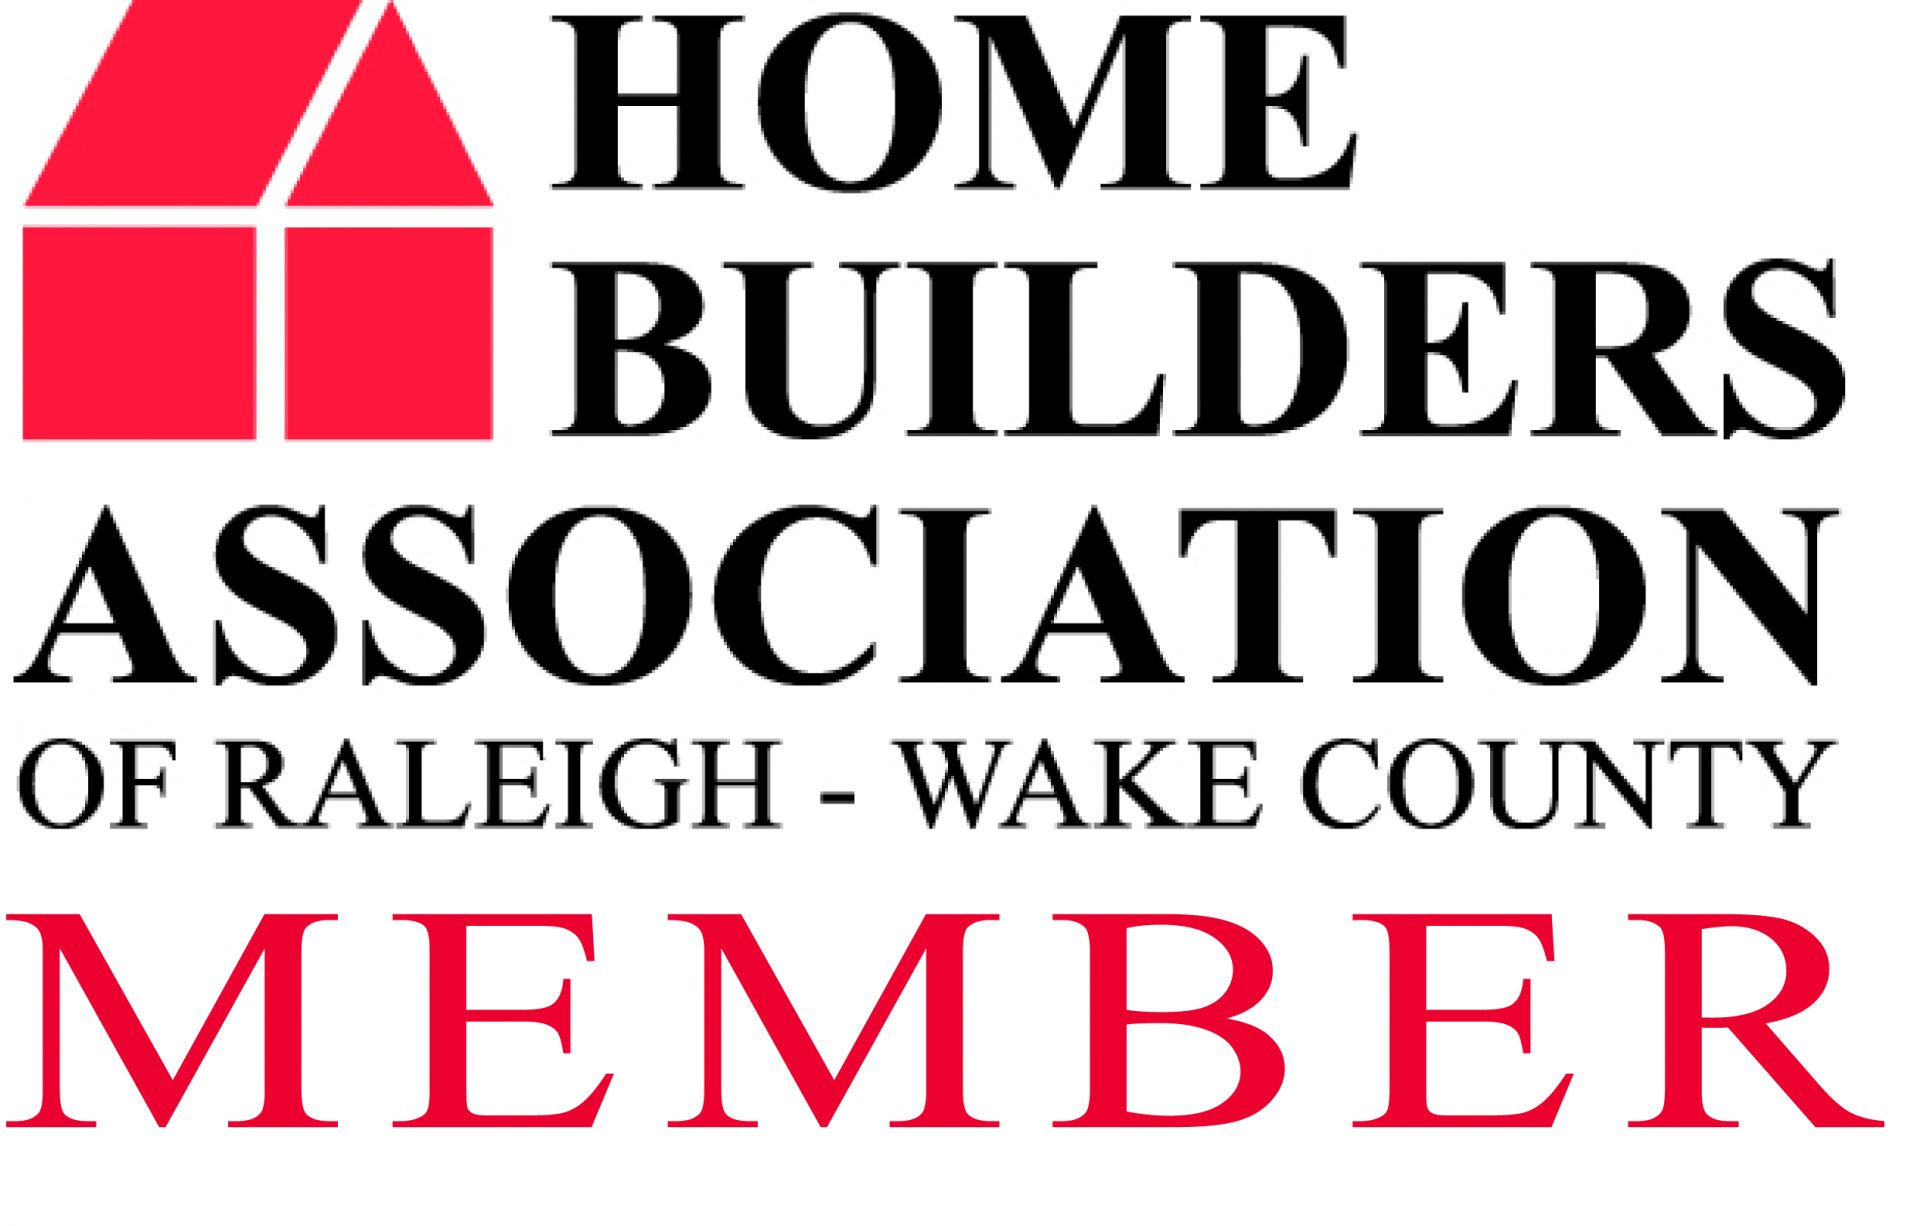 Home Builders Association of Raleigh